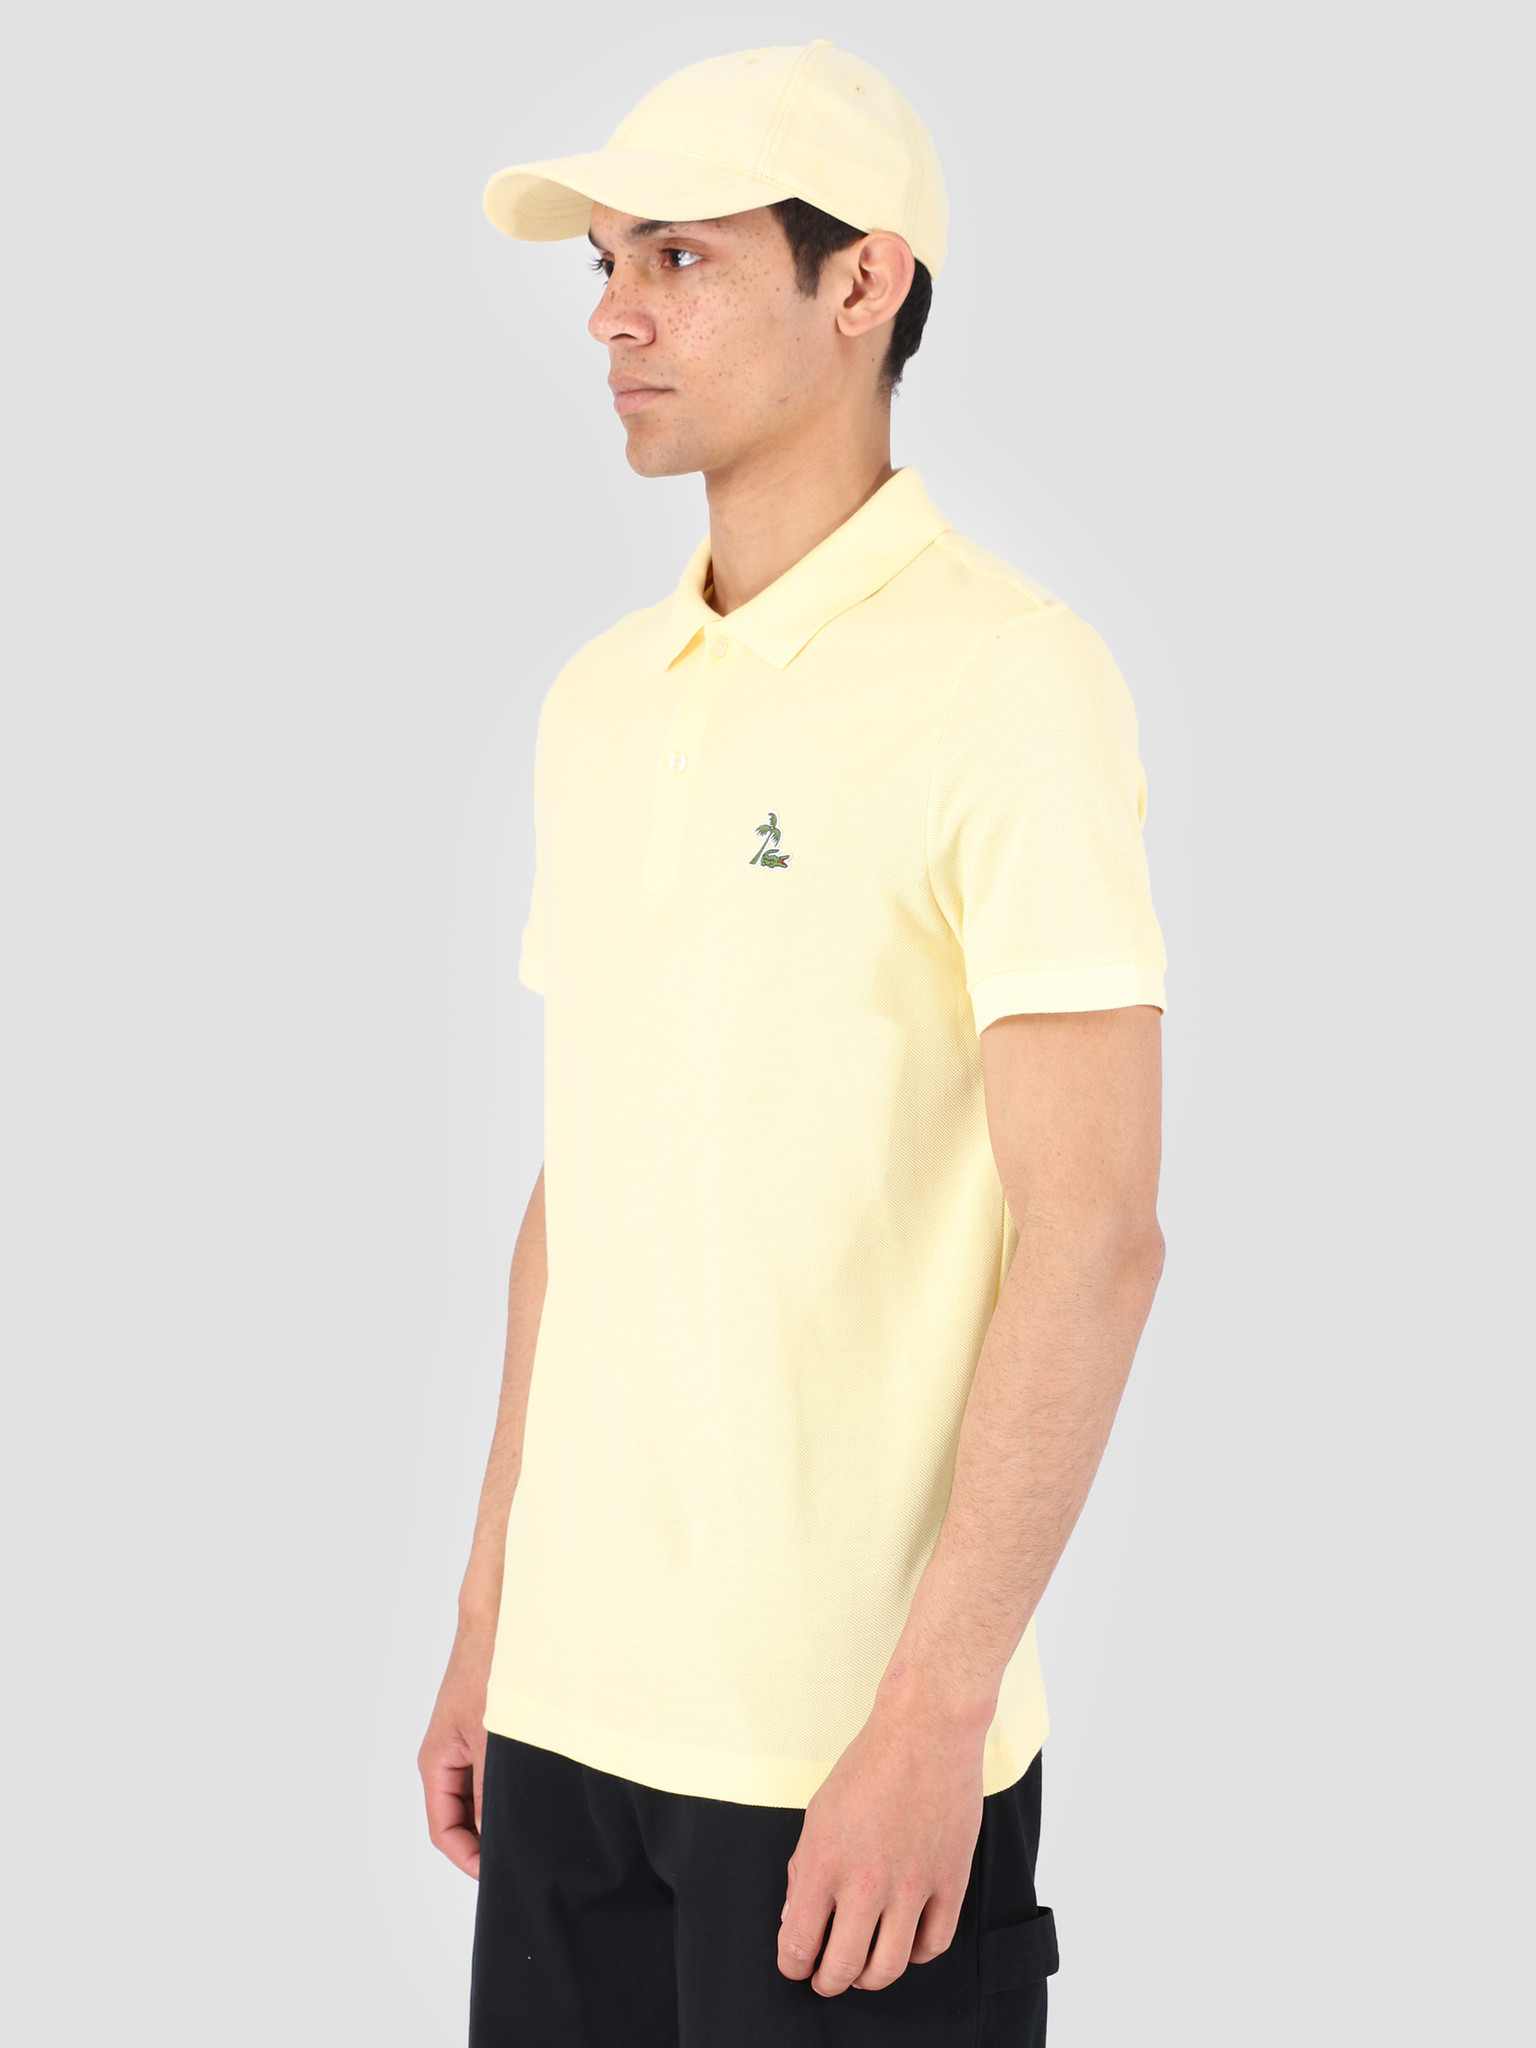 Lacoste Lacoste 1Hp3 Men'S T-Shirt Polo 03 Napolitan Yellow Ph4258-91